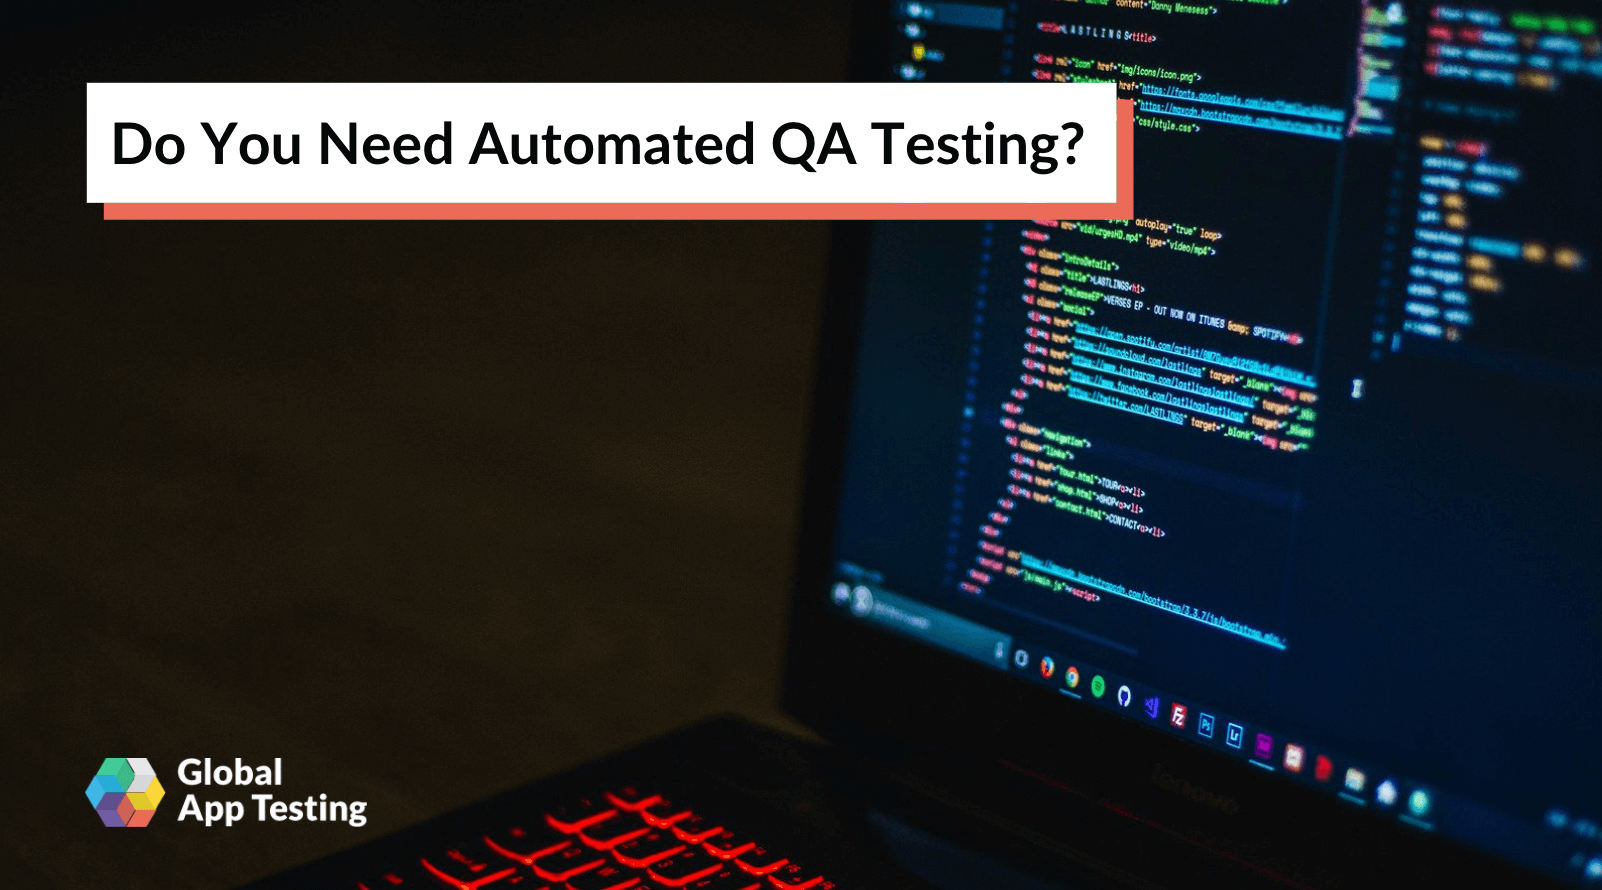 Do You Need Automated QA Testing?